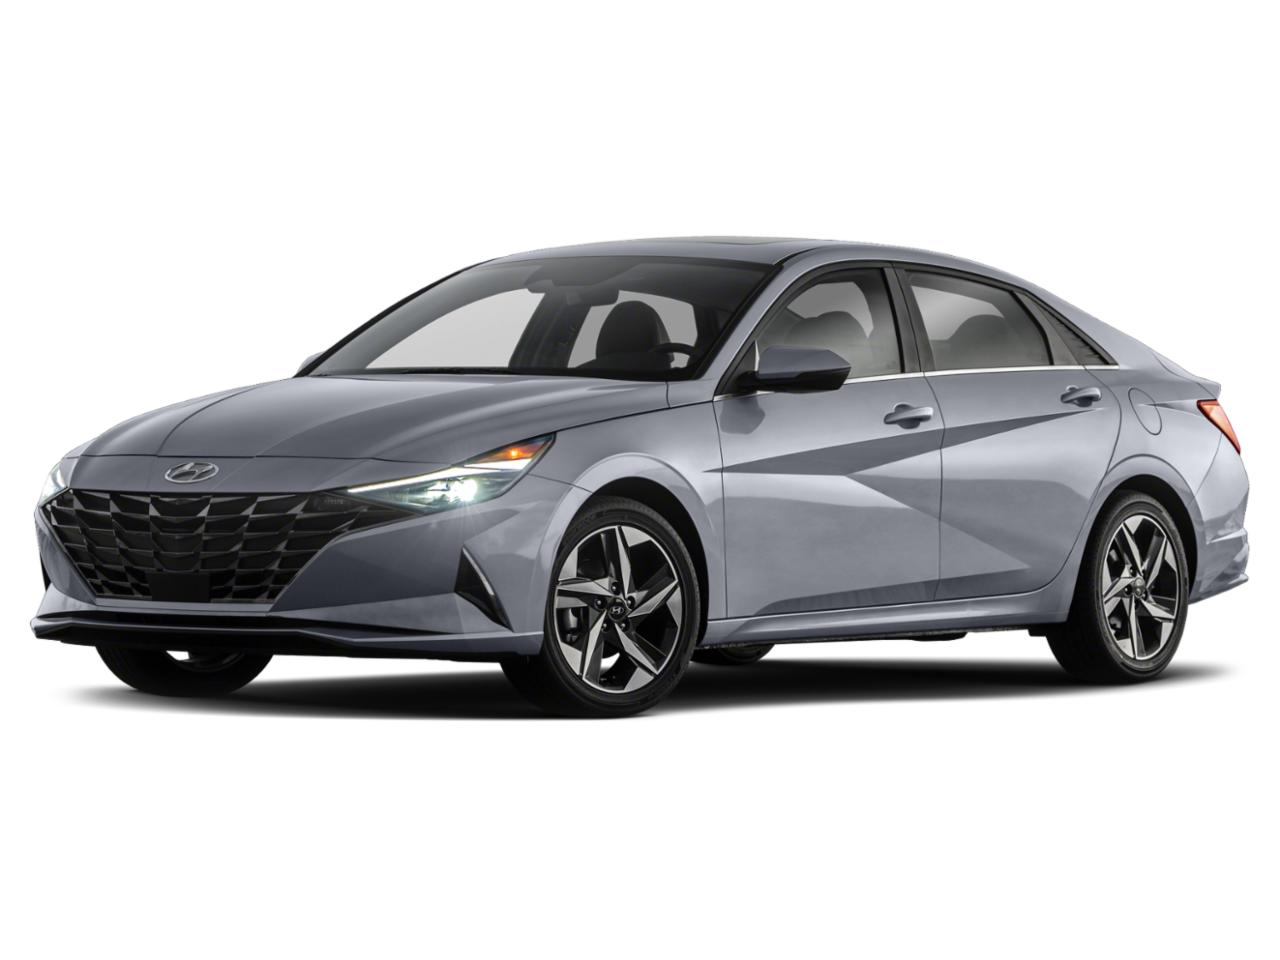 2021 Hyundai Elantra Hybrid Vehicle Photo in Nashua, NH 03060